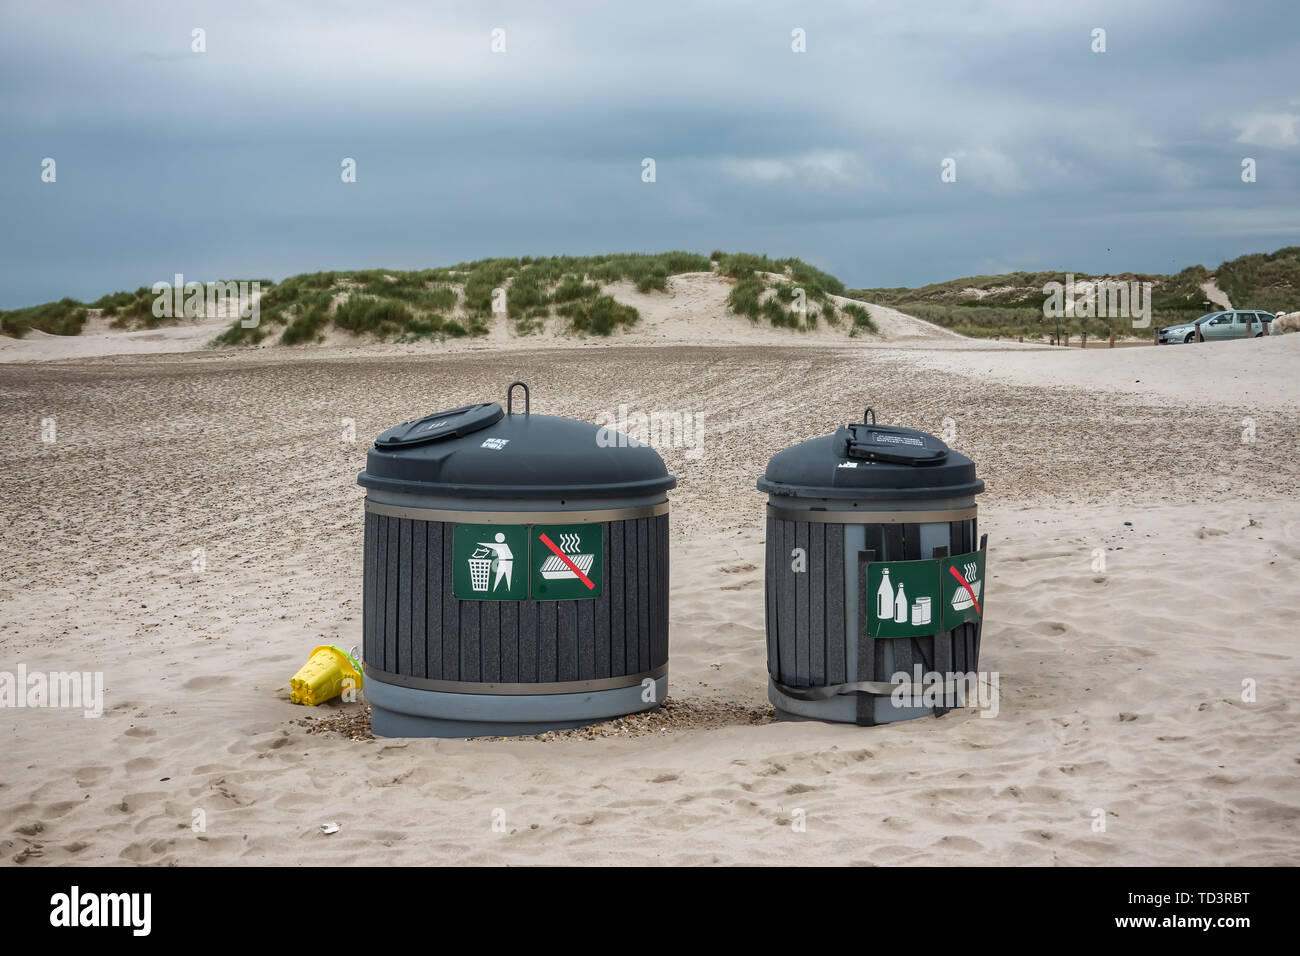 Litter containers on Henne beach in Denmark - Stock Image